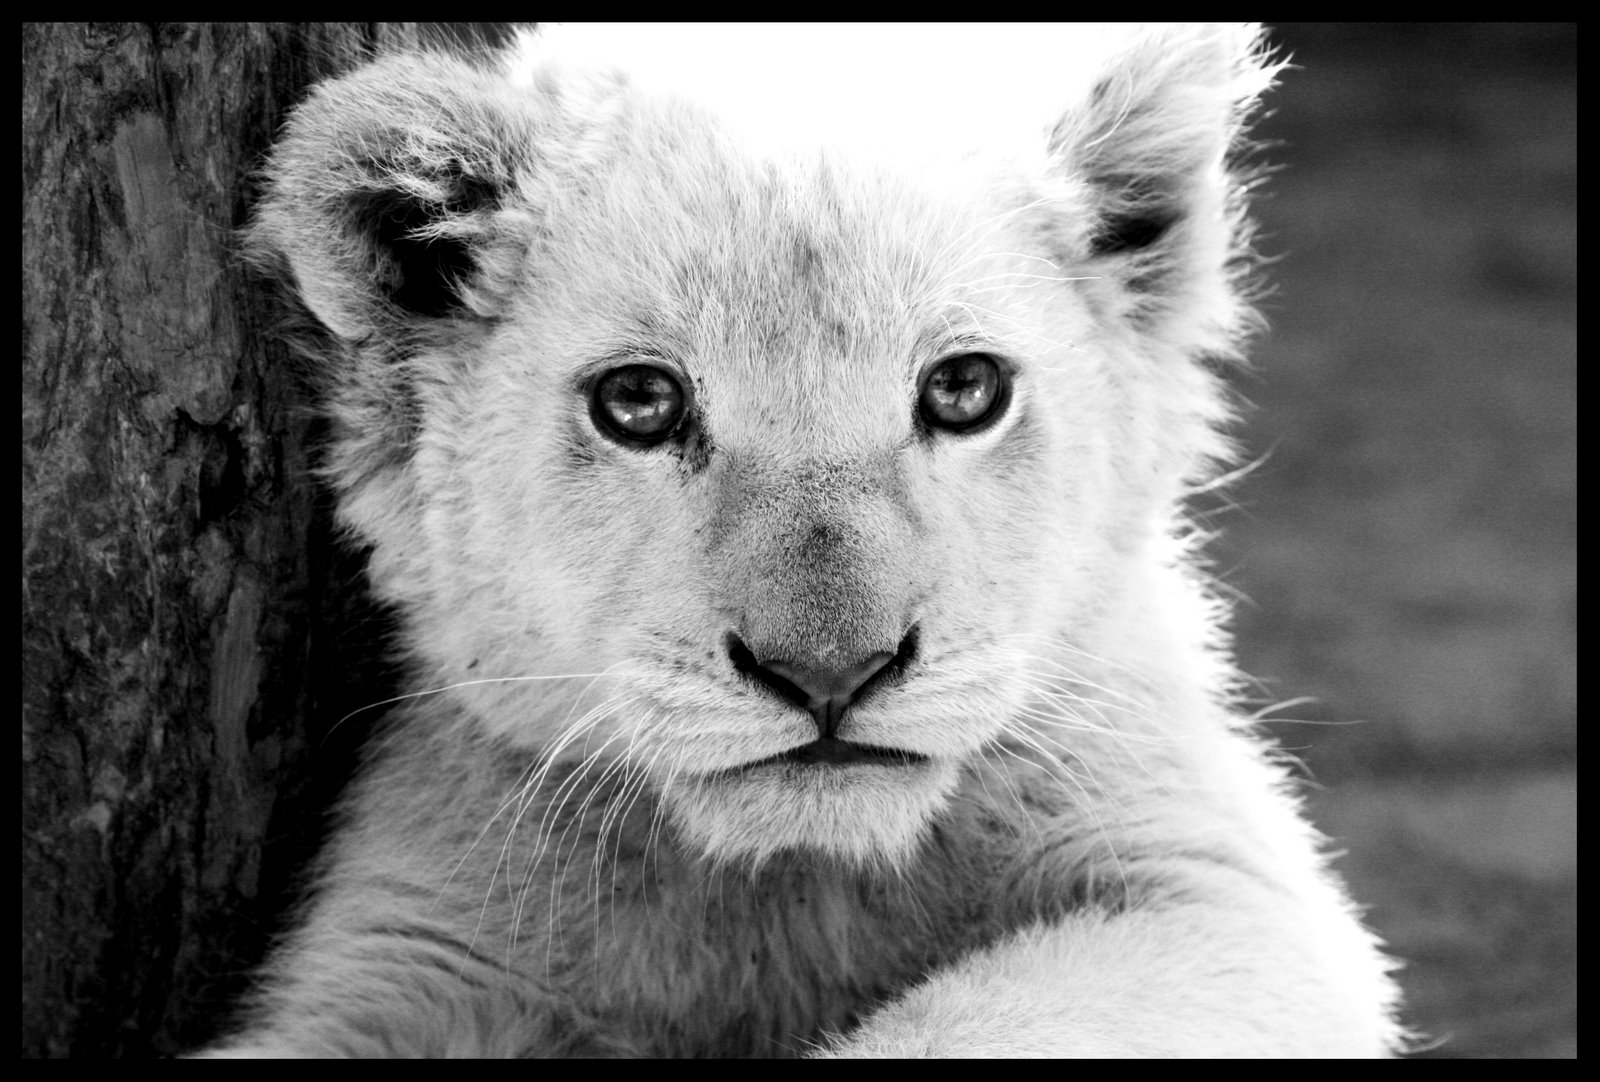 Cute White Baby Lion Wallpaper HD